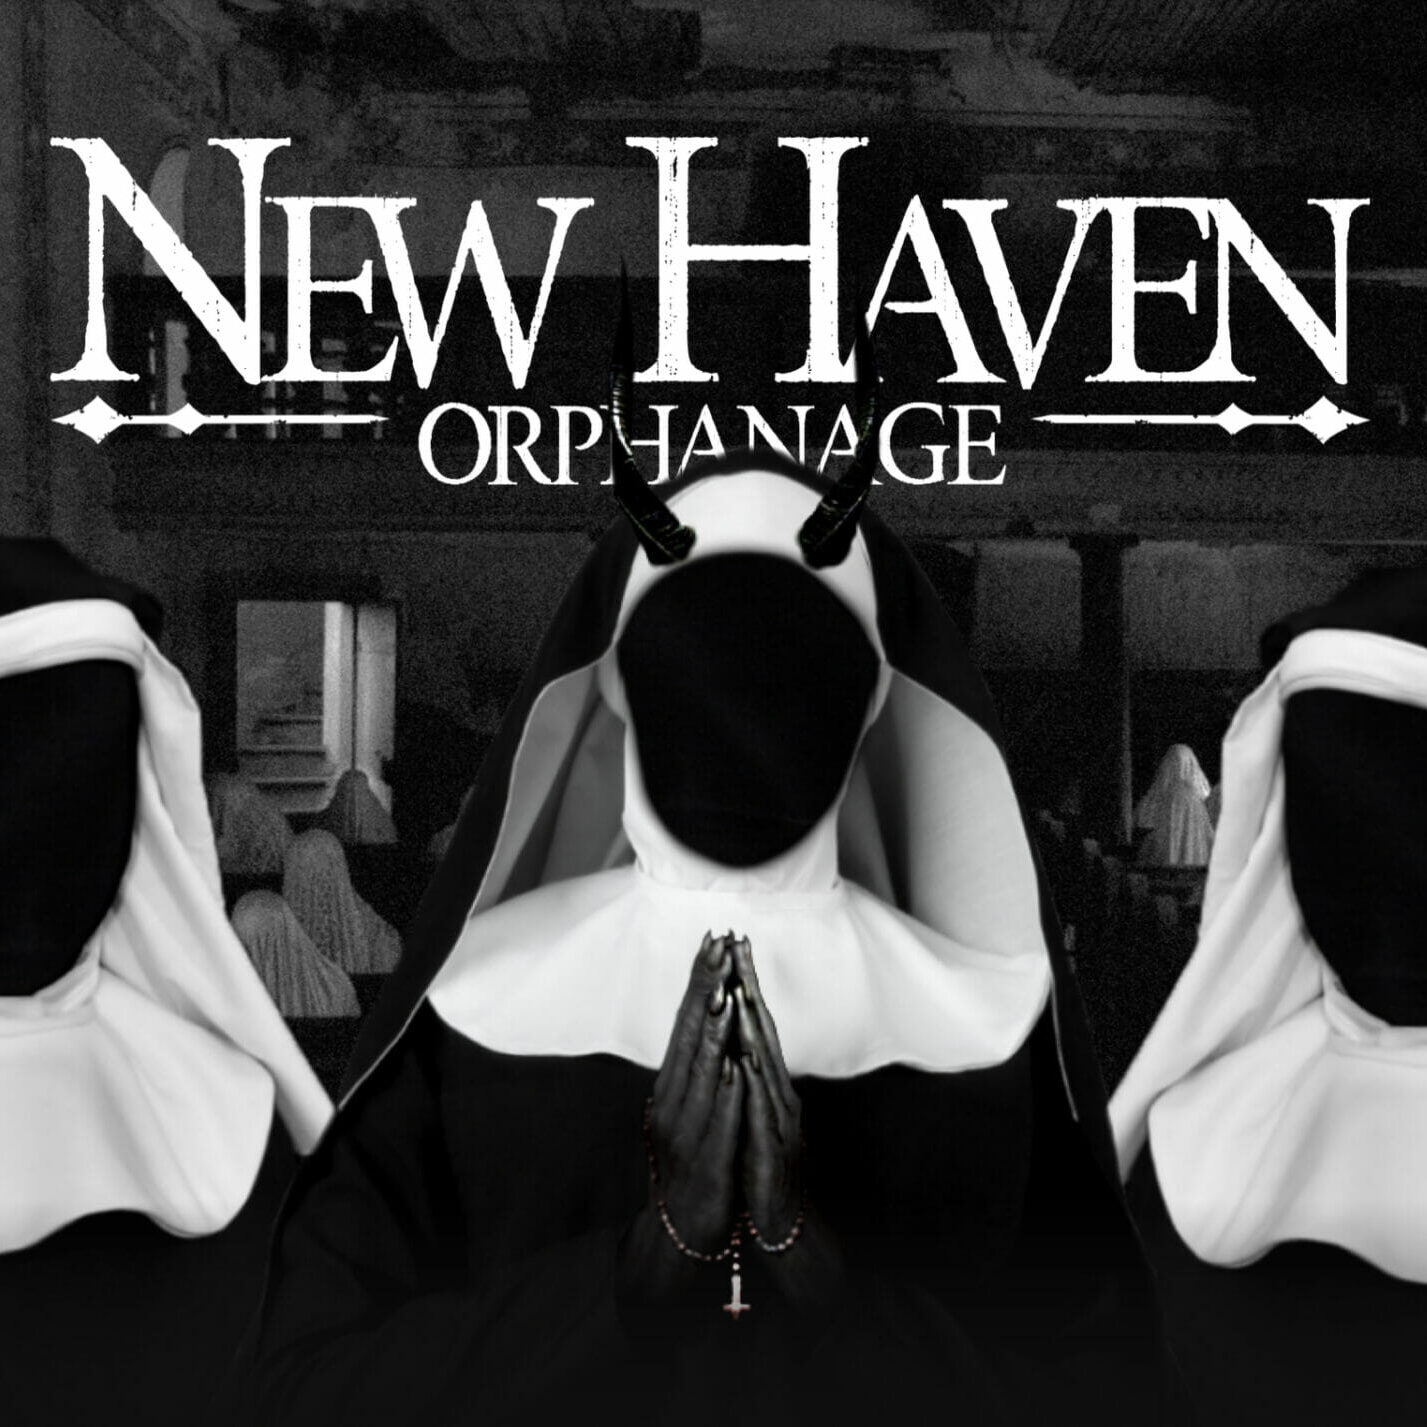 New Haven Orphanage